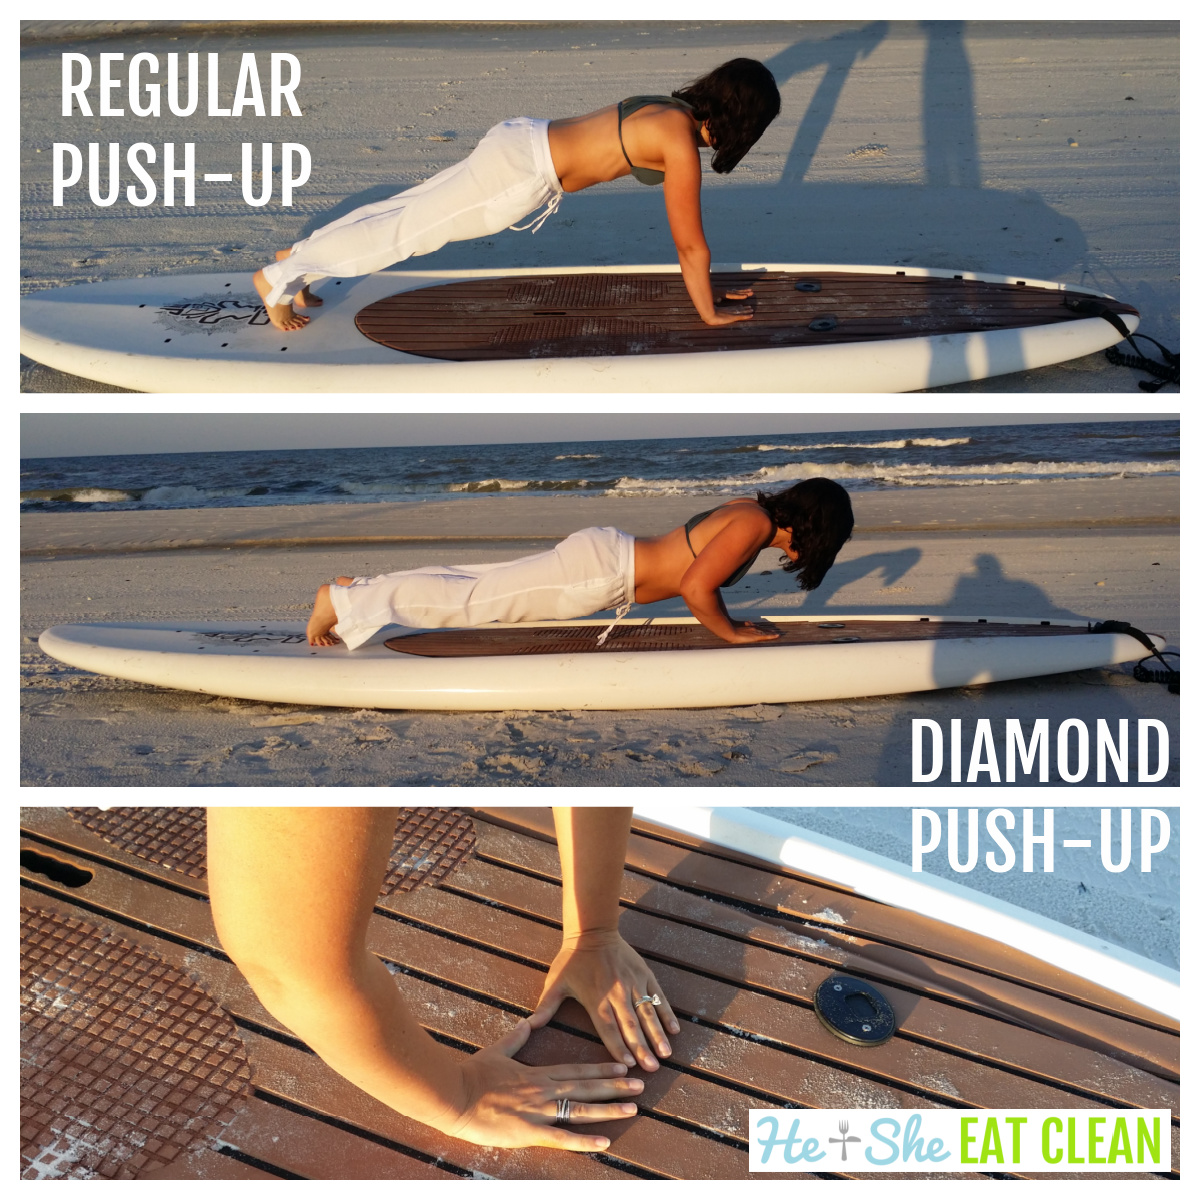 collage of female doing push-ups on a paddleboard on the beach